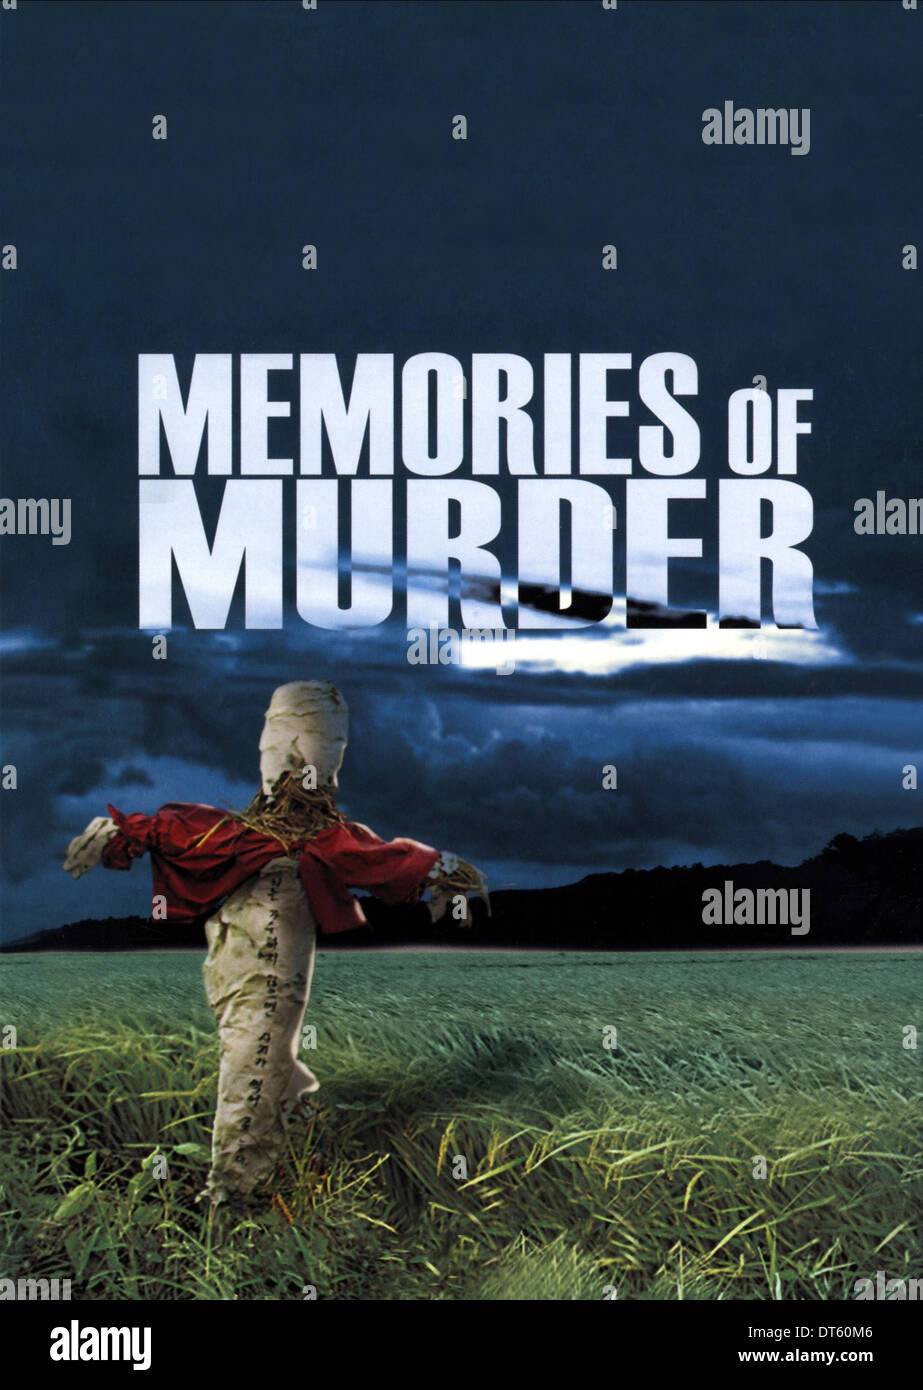 Memories Of Murder 2003 High Resolution Stock Photography And Images Alamy